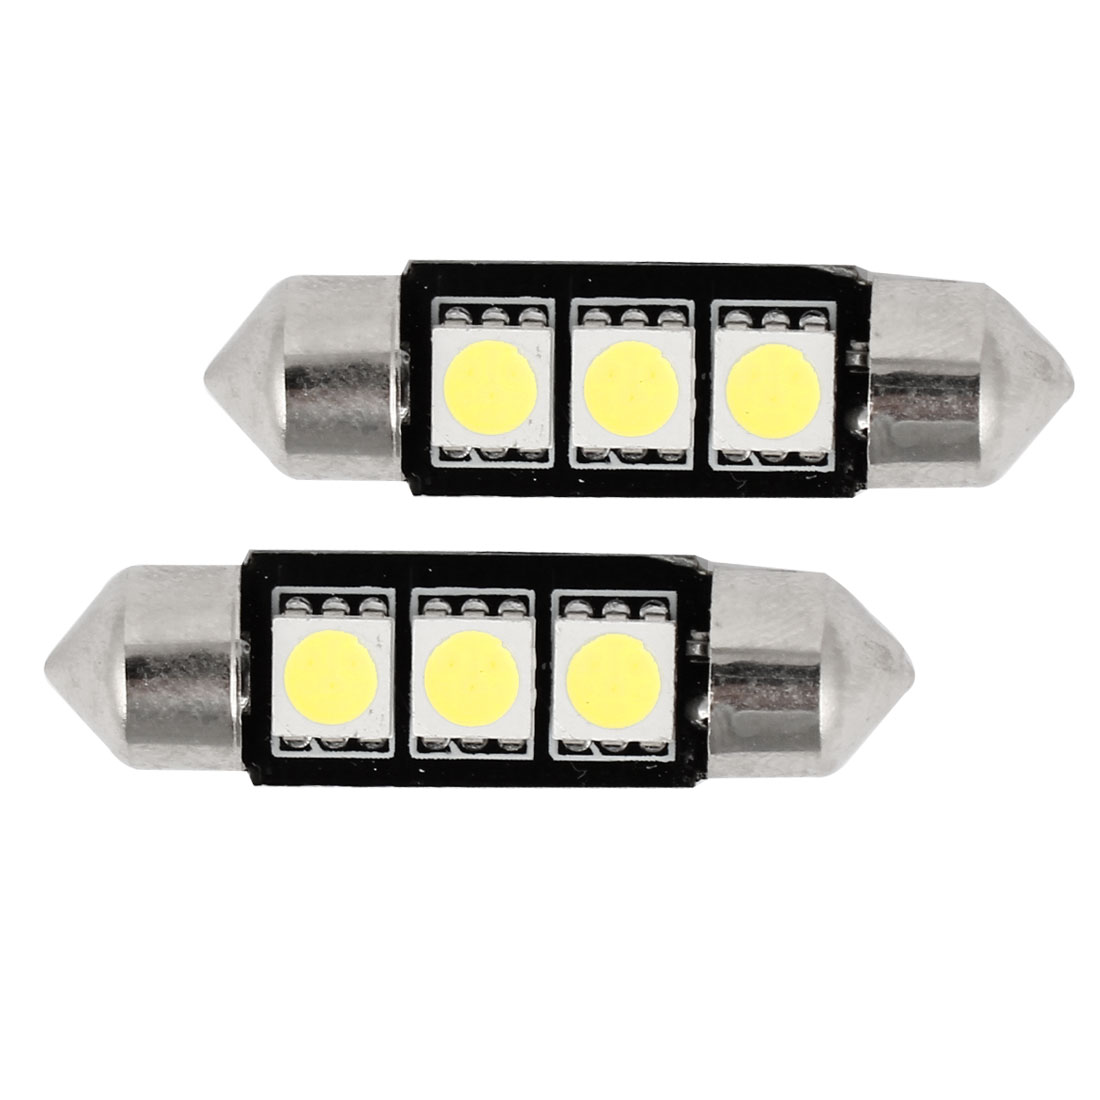 2x 41mm 3 5050 SMD LED 239 272 C5W Canbus No Error White Interior Light Festoon Bulb